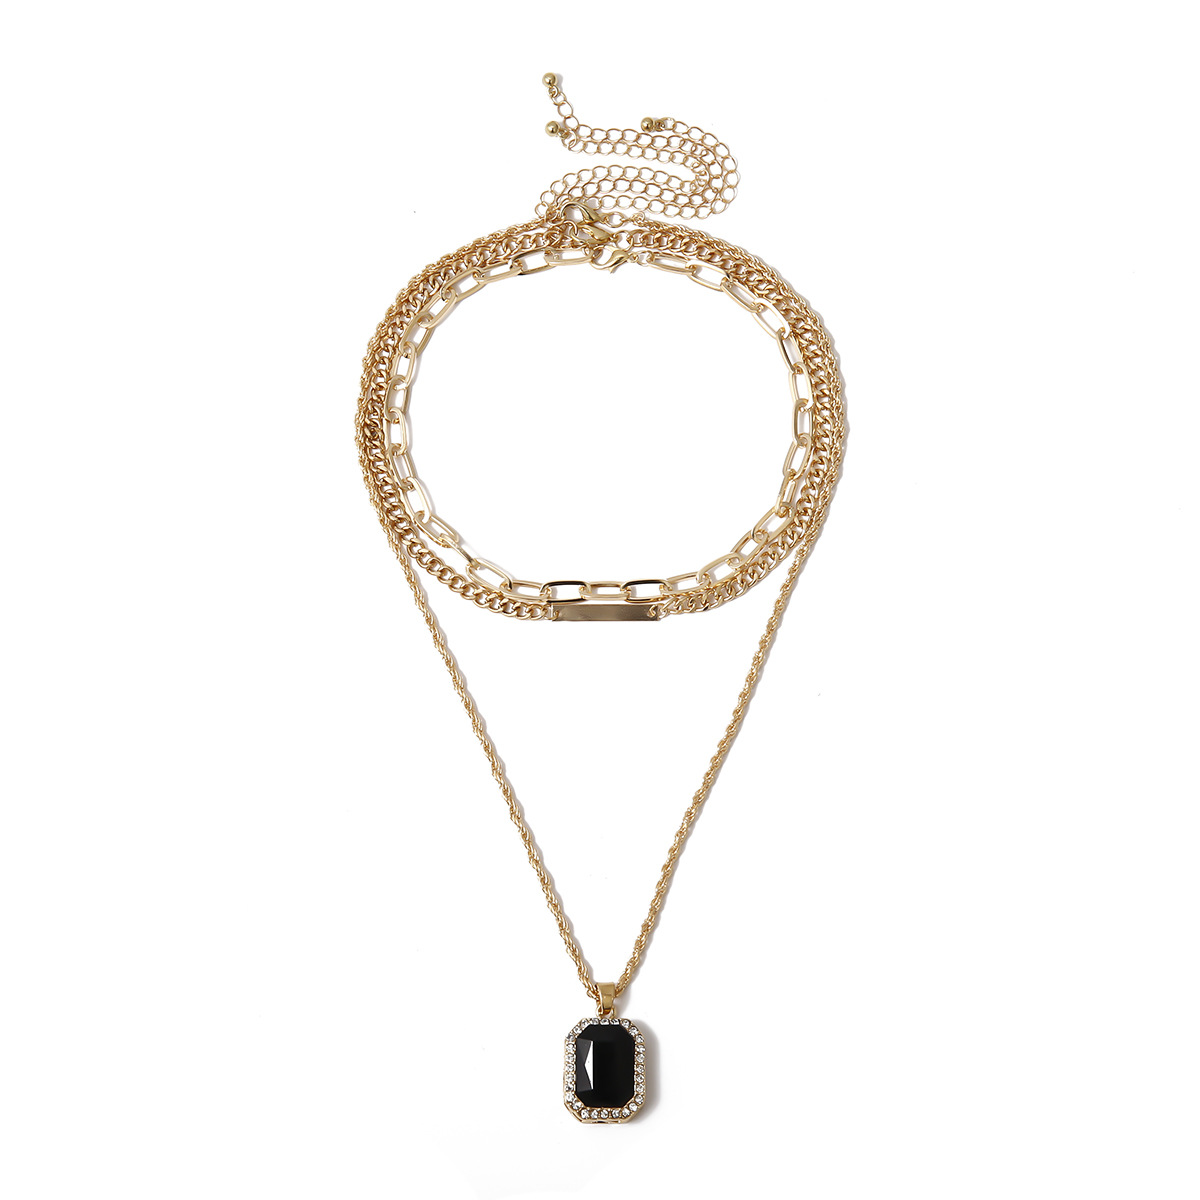 Geometric Black Resin Pendant Necklace for Women Gold Color Choker Multilayer Chains Necklaces Female 2020 Fashion Jewelry New